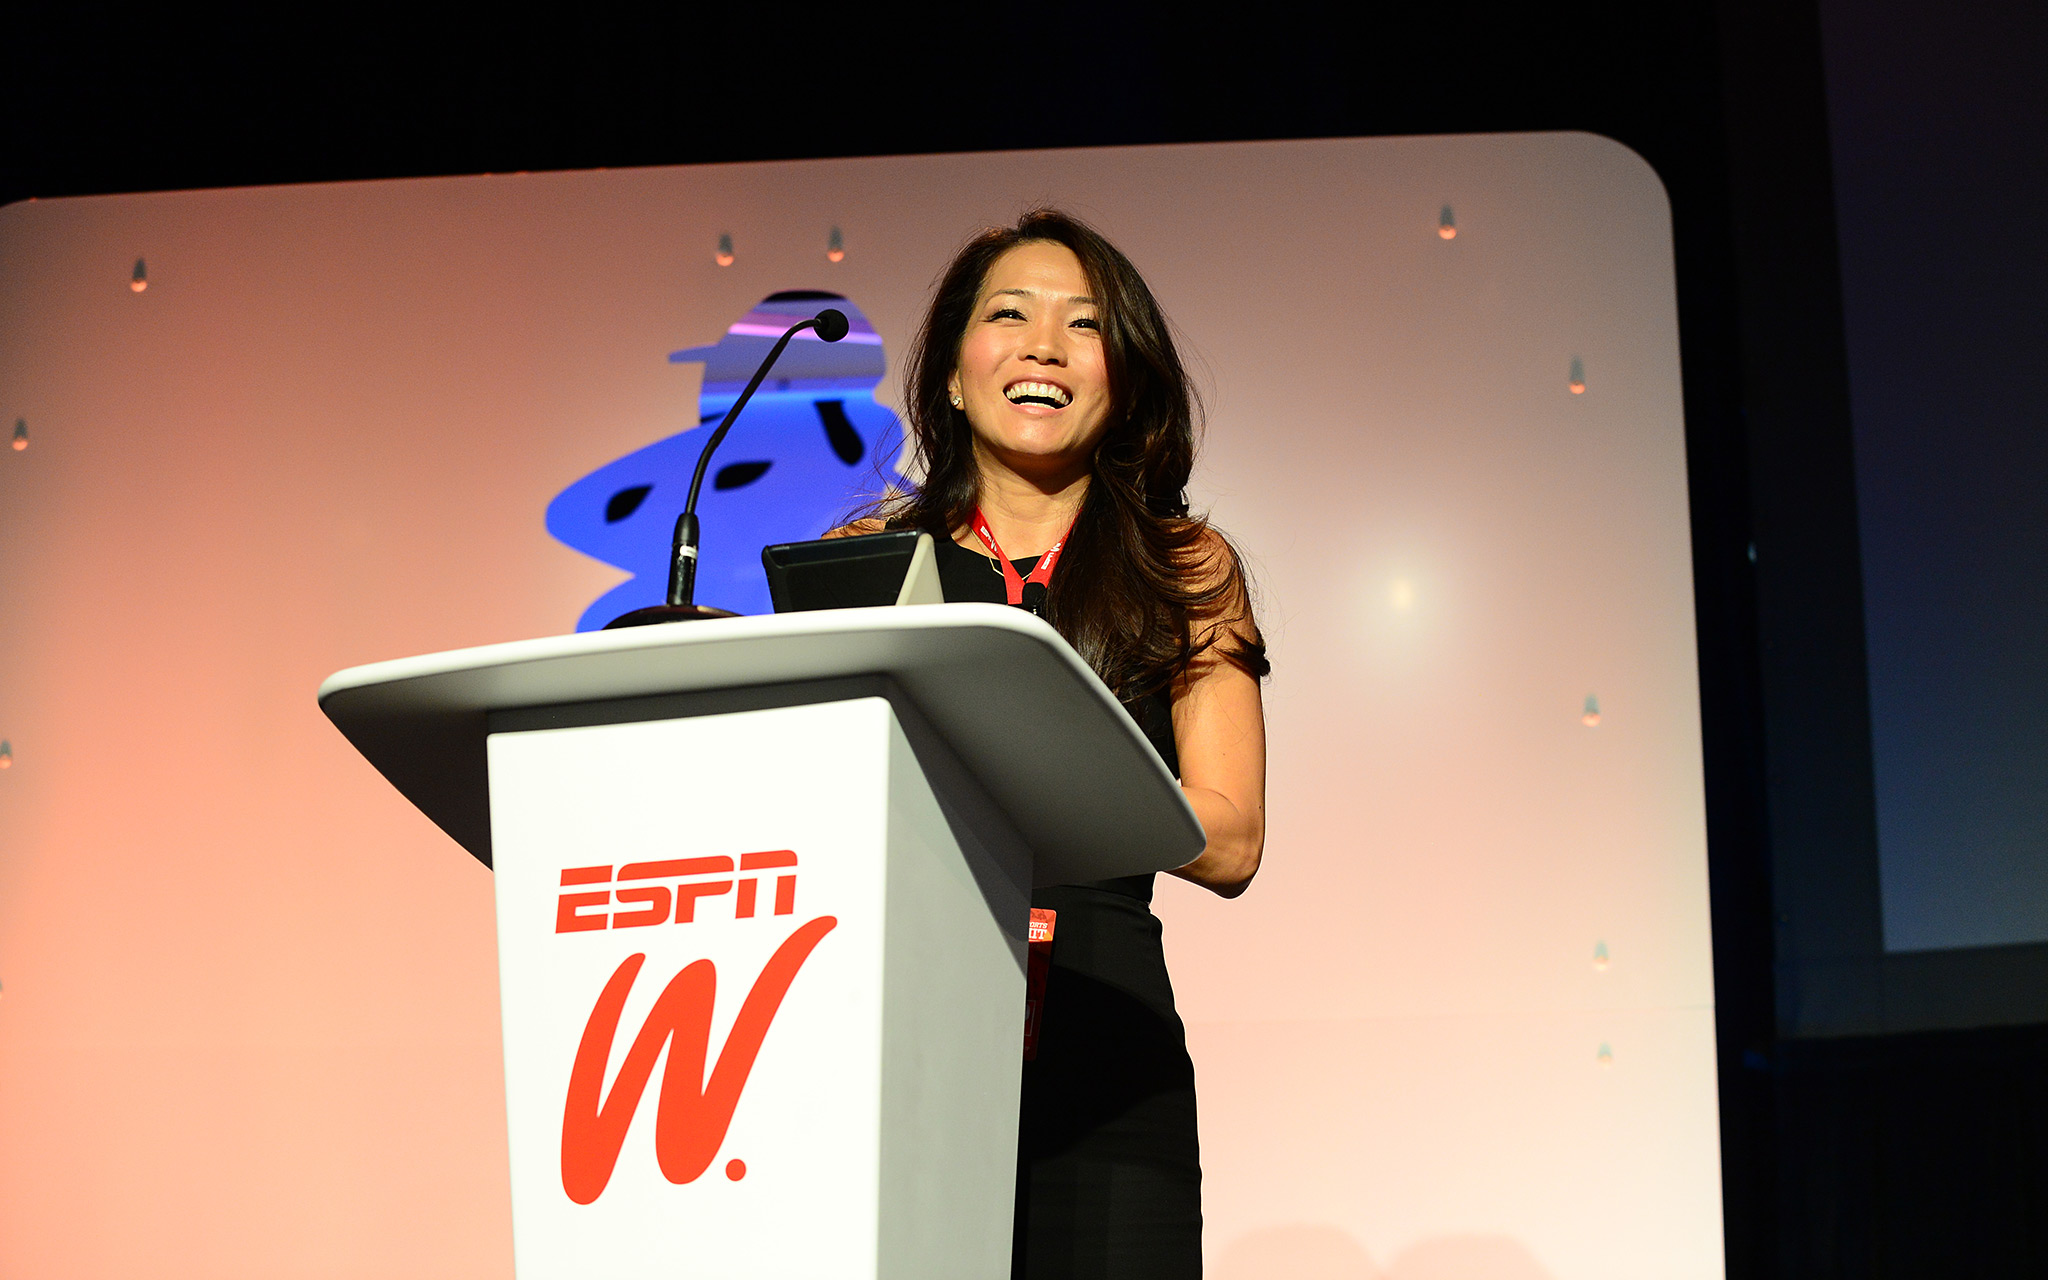 Keli Lee, executive vice president of casting for ABC, took part in one of the Summit's Power Talks and spoke about how the industry could create more opportunities for female athletes.